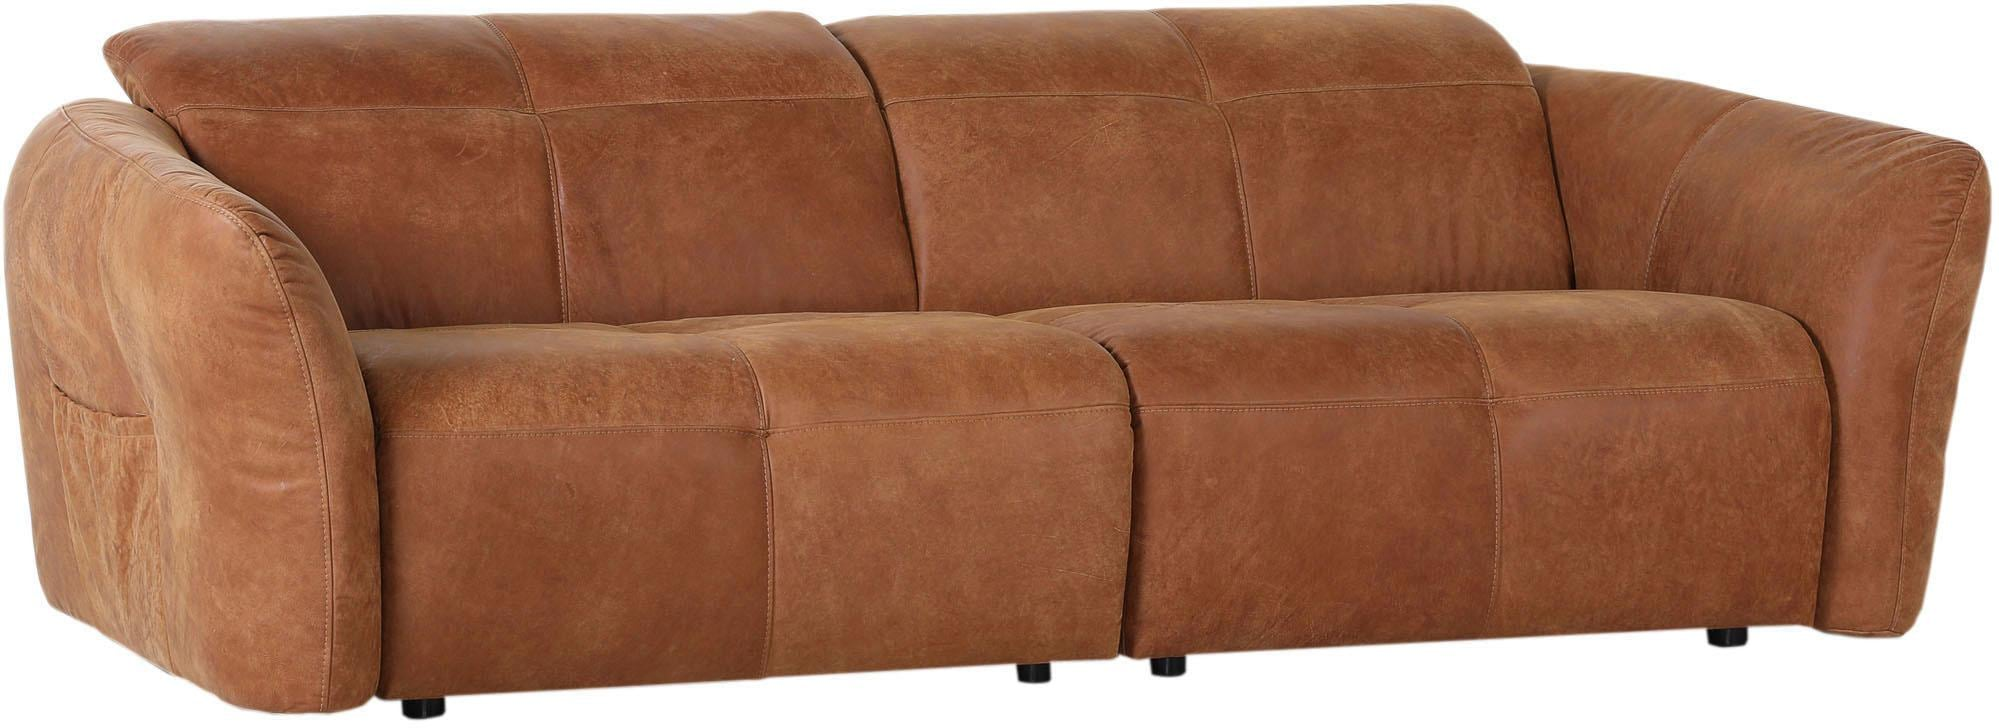 Home affaire Big-Sofa Arkansas